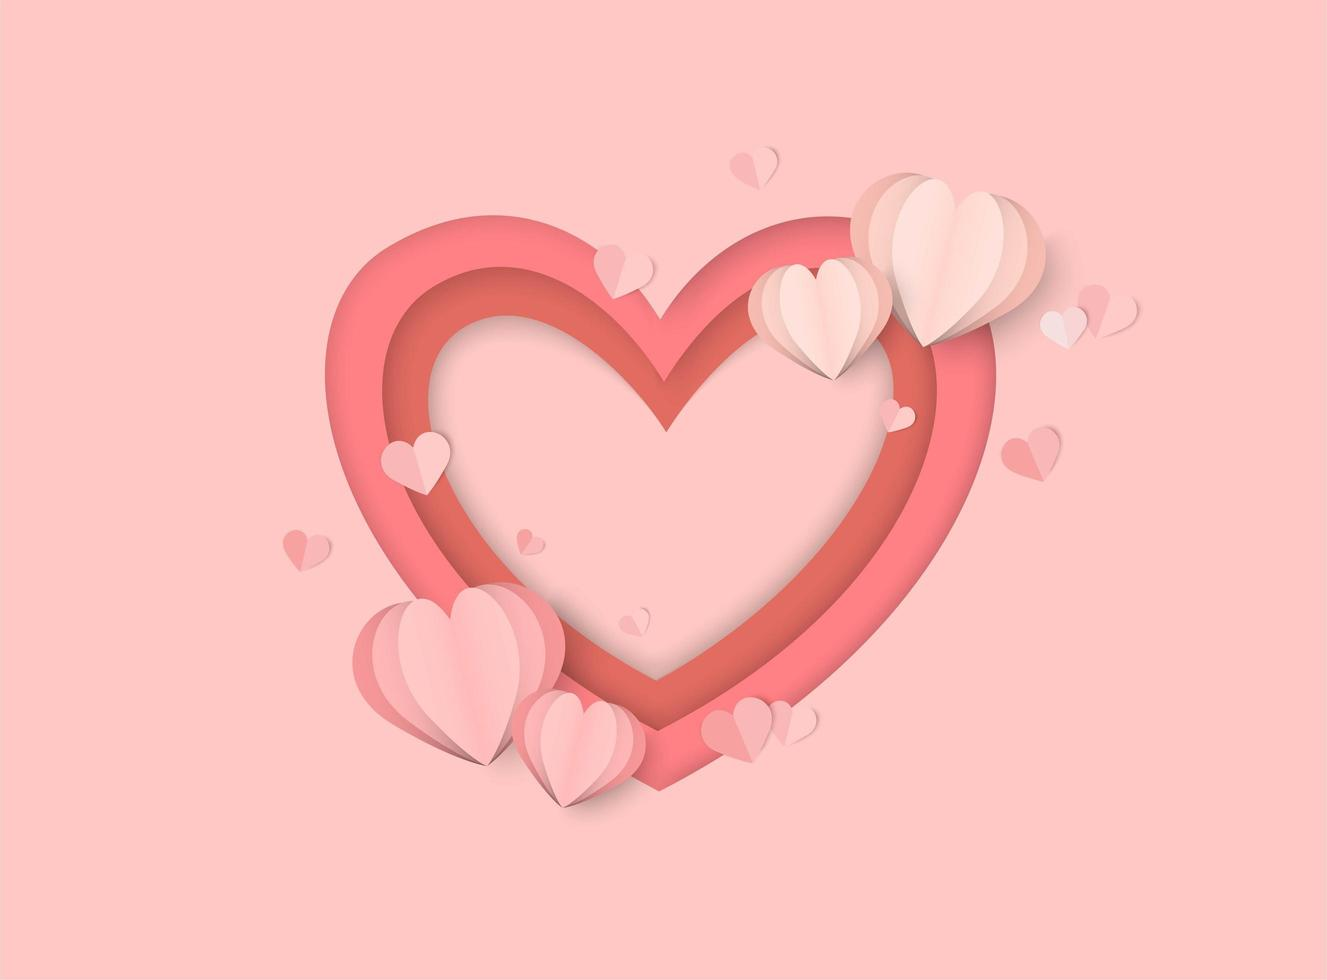 Valentines day pink background with layered paper cut style heart shapes